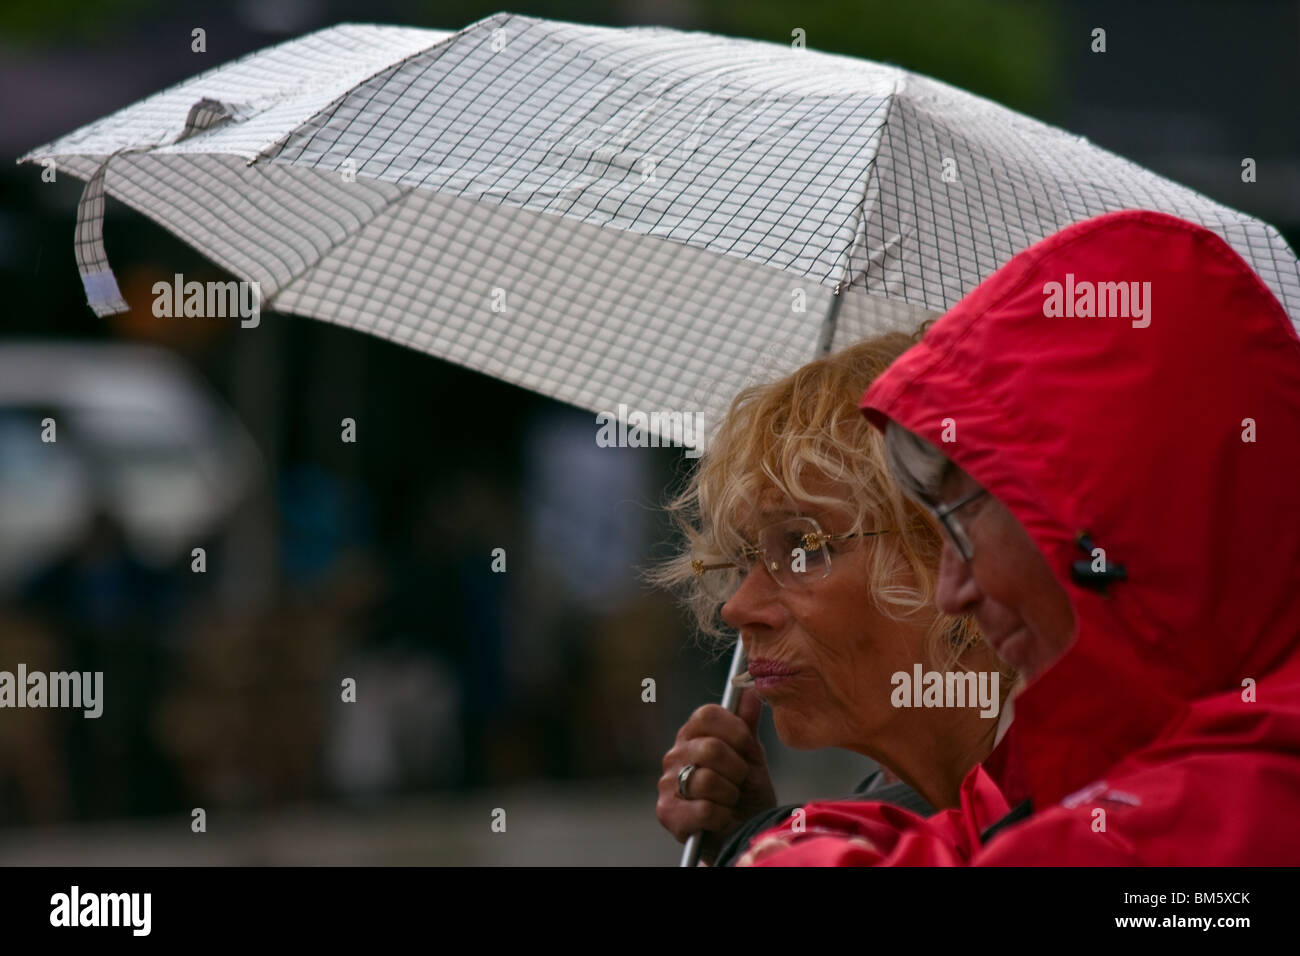 women shopping on a rainy day, annoyed over the weather Stock Photo